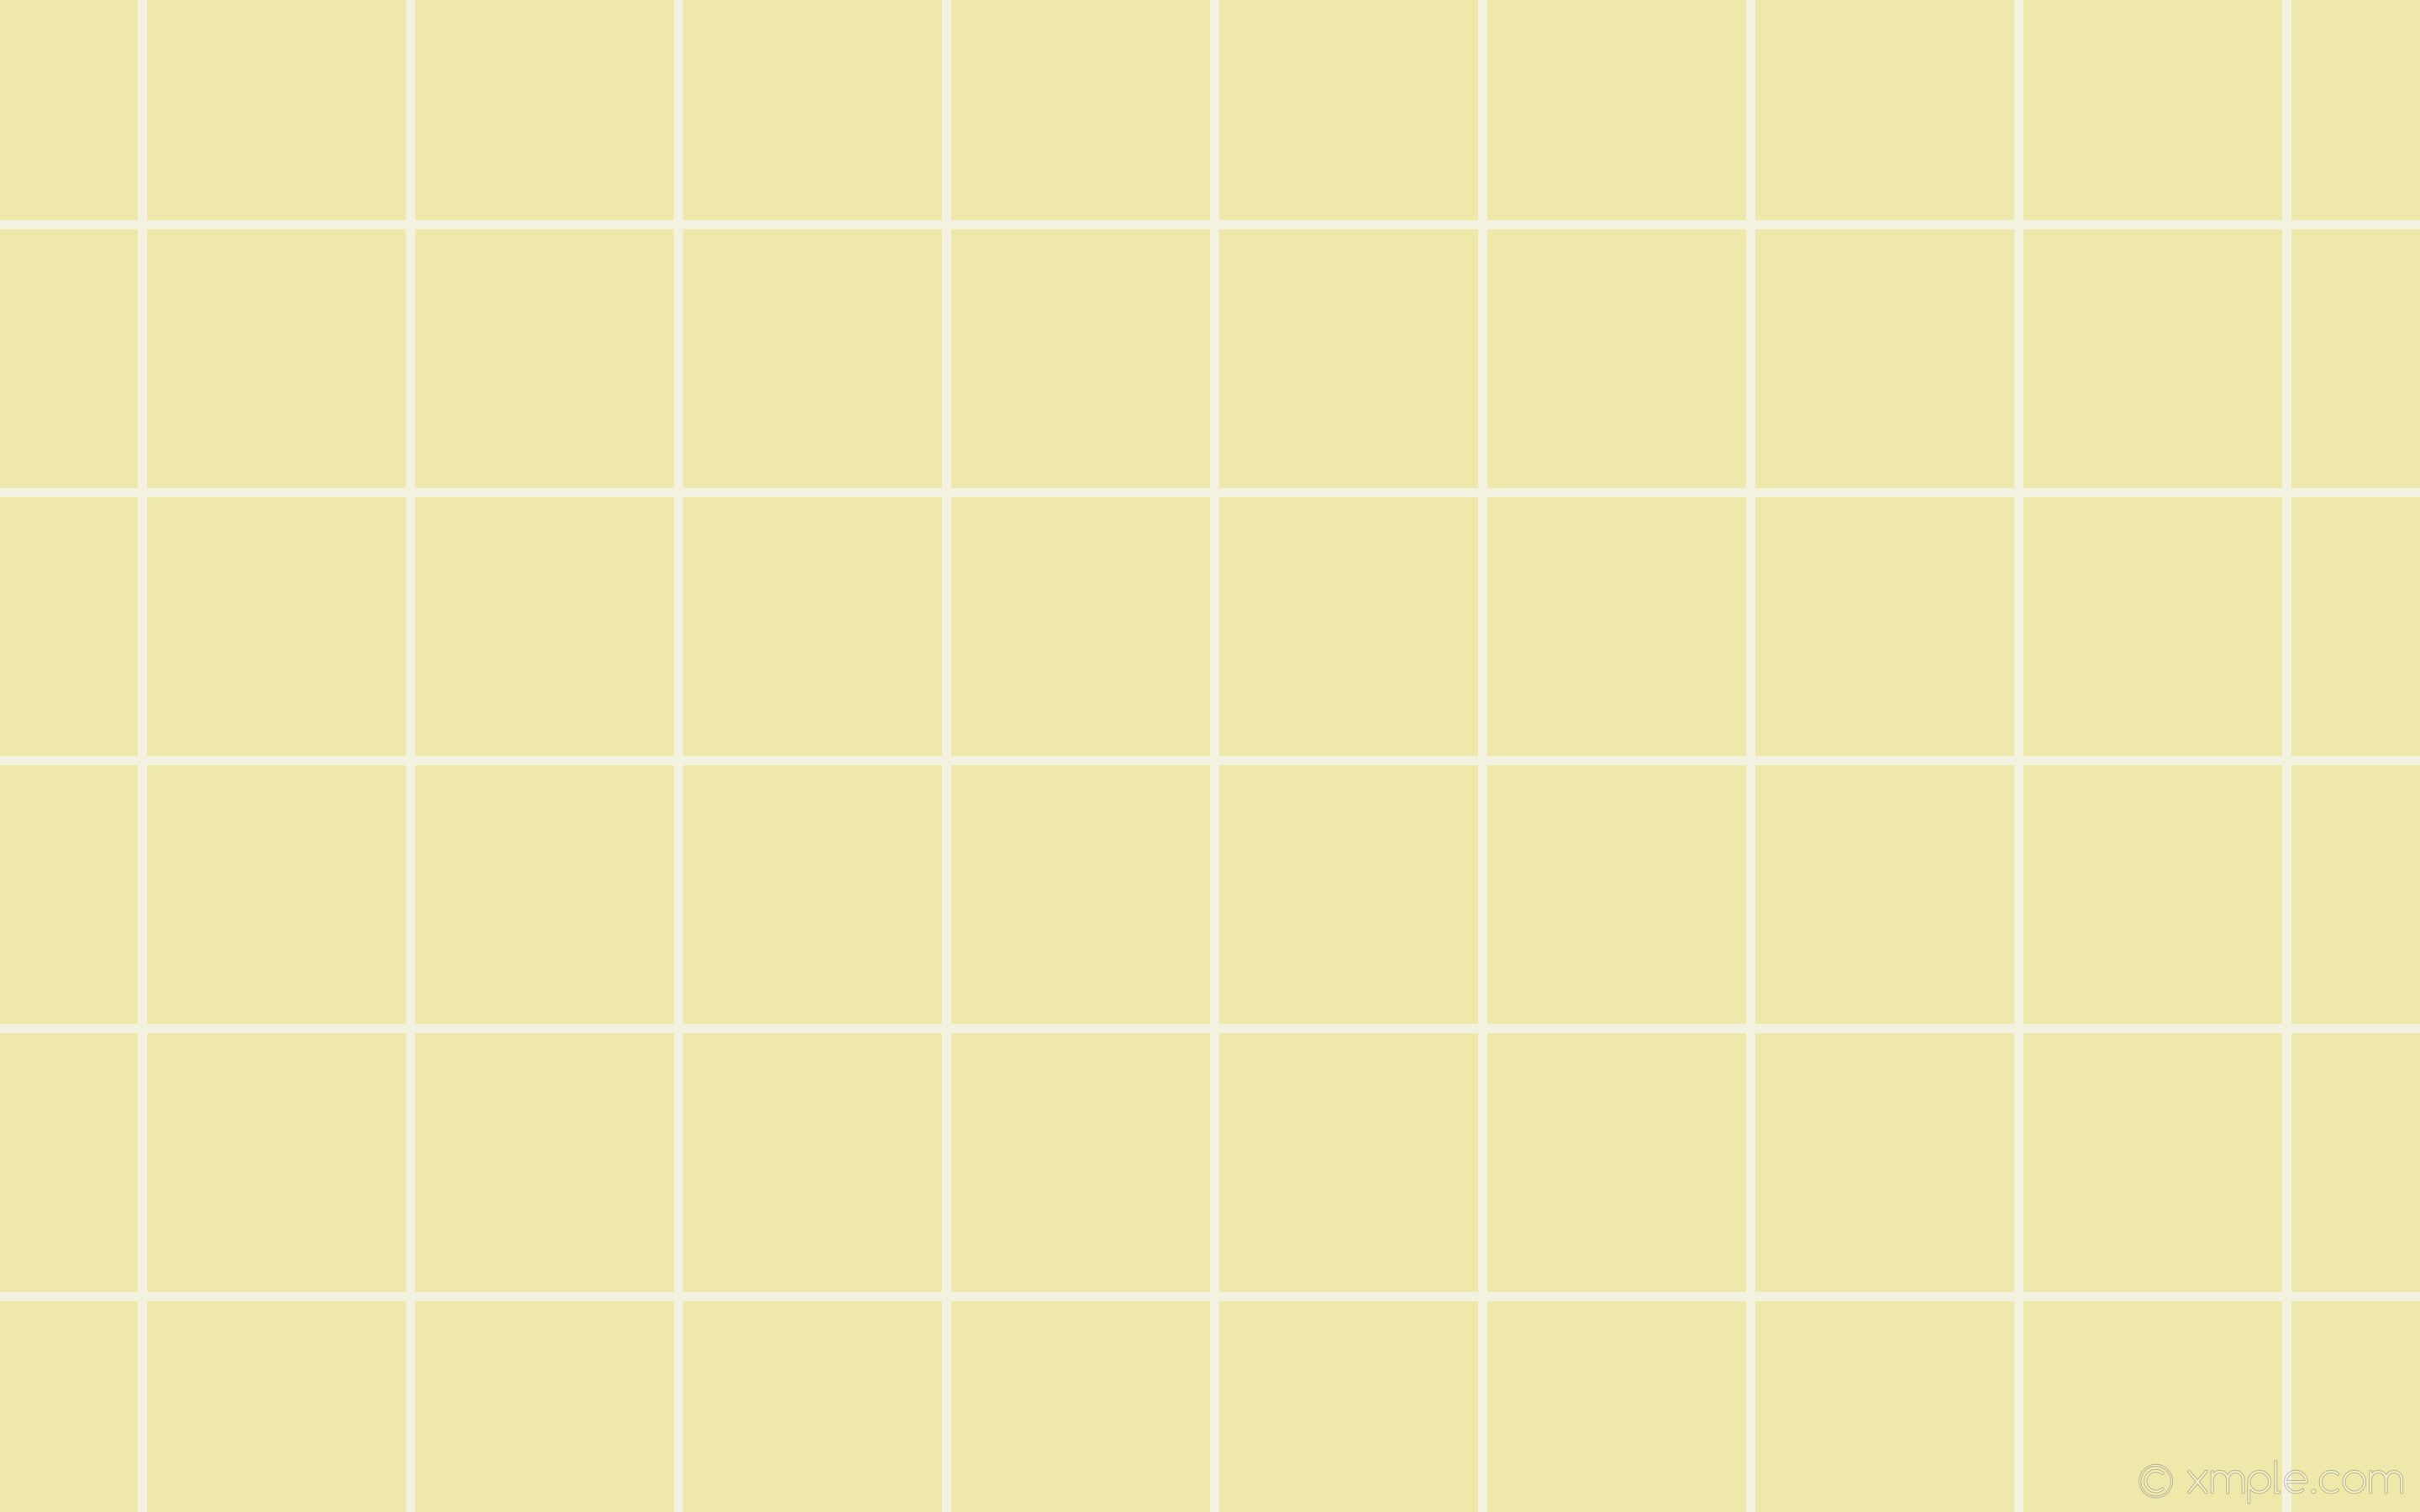 Yellow Aesthetic Wallpaper Laptop Posted By Michelle Thompson